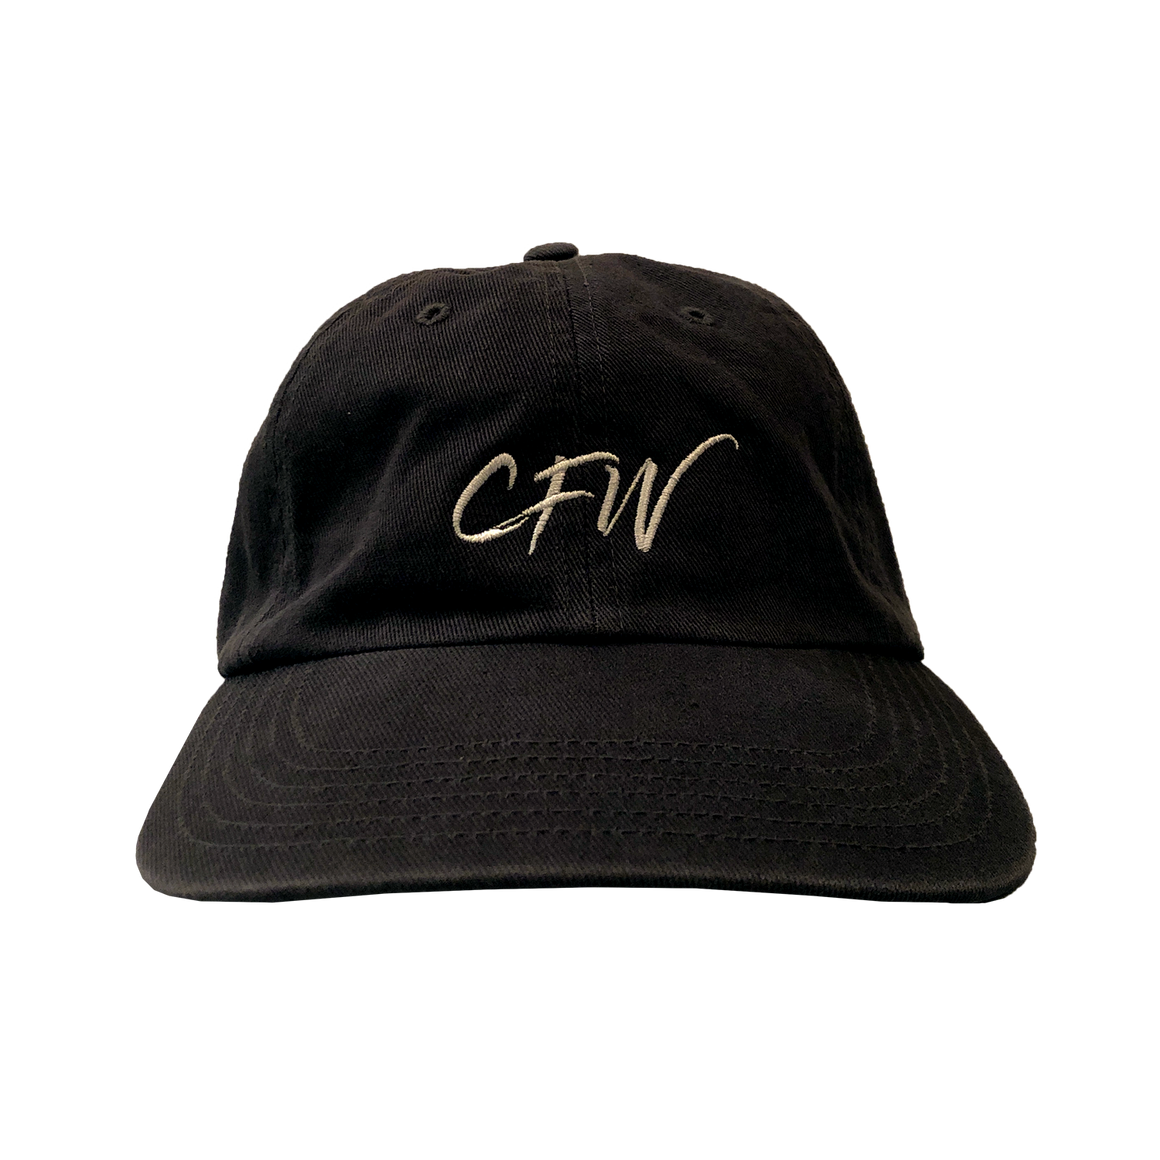 Gray, cotton baseball cap with white CFW letters embrodied on the center panel.